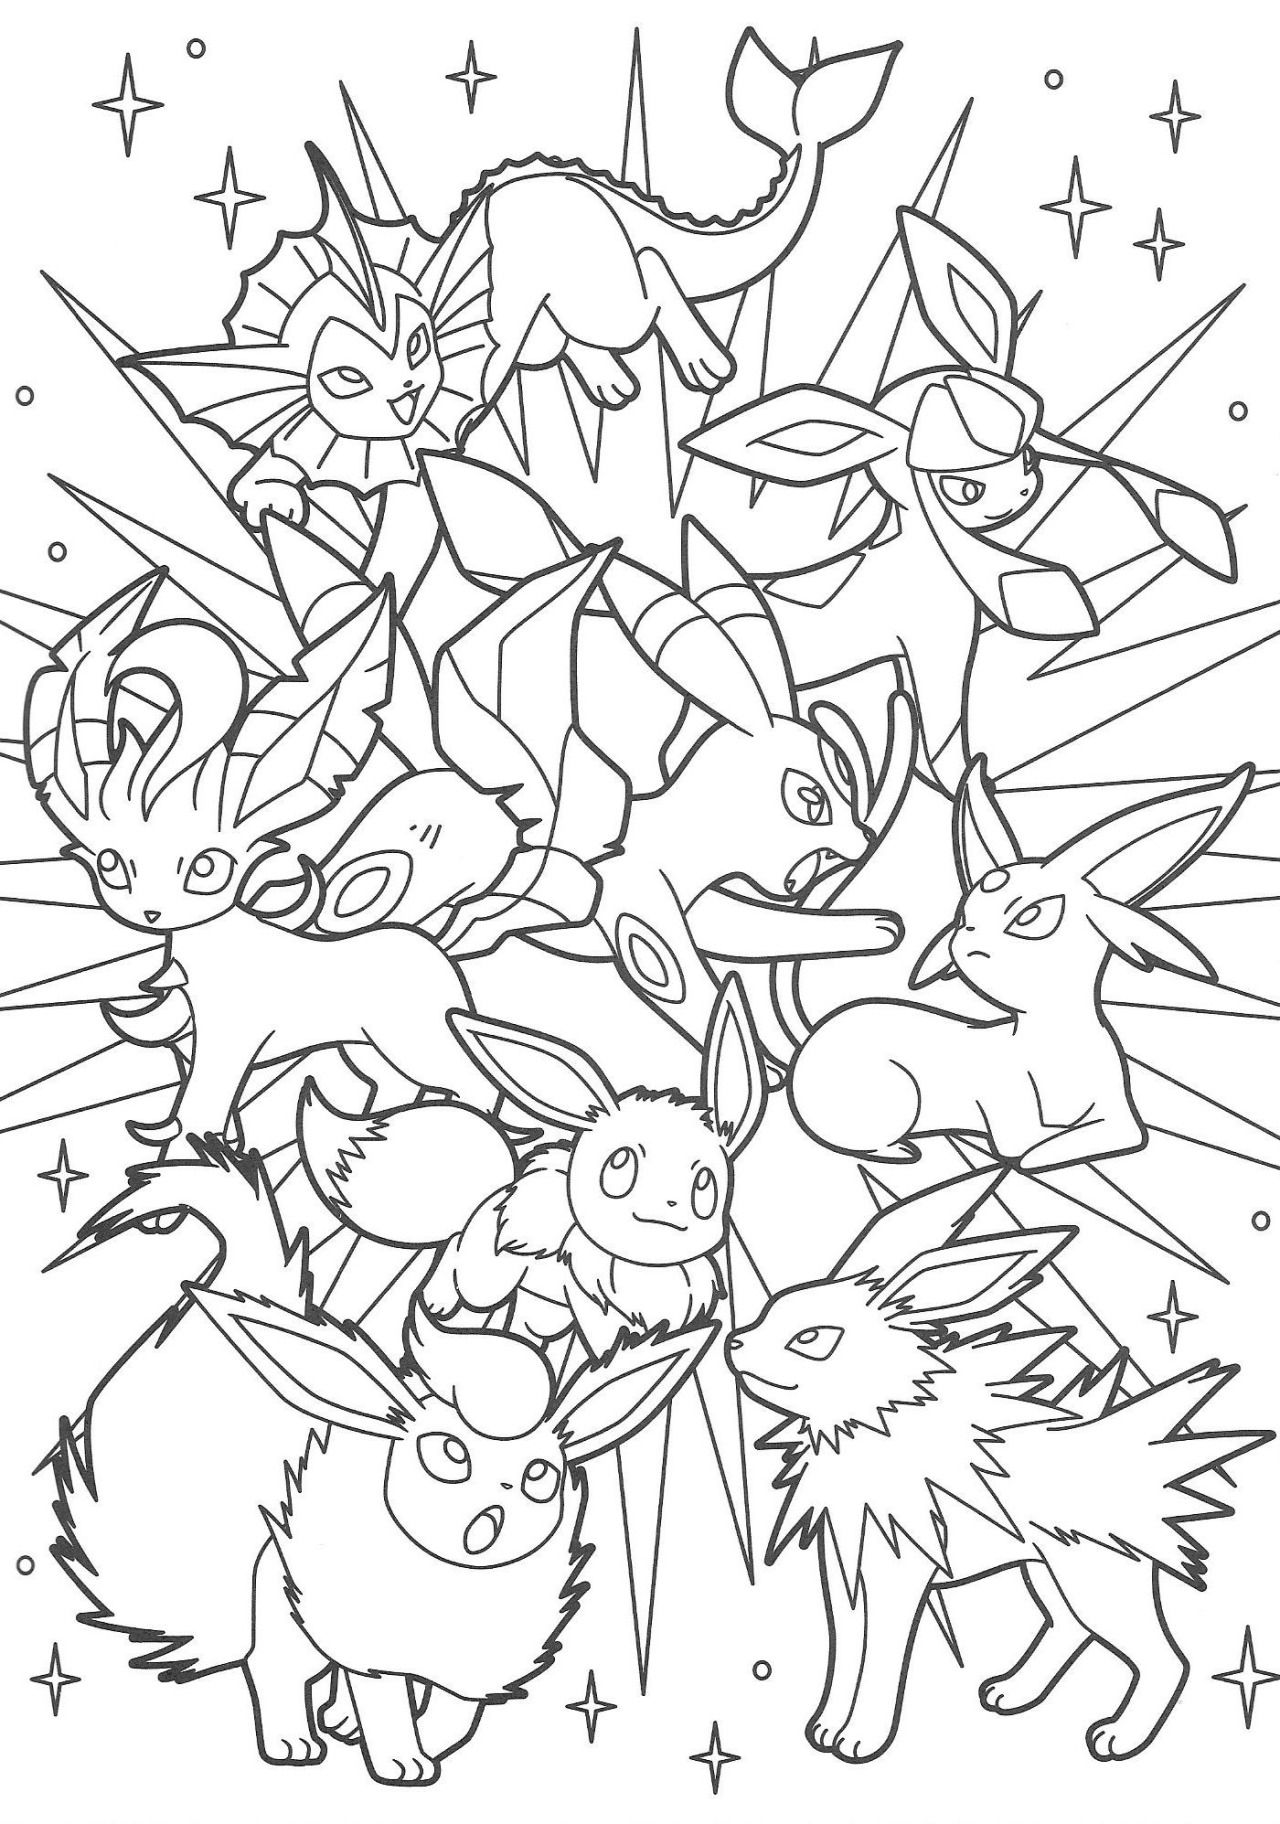 Pokemon coloring pages all eevee evolutions - Pok Mon Scans From Pacificpikachu S Collection Photo